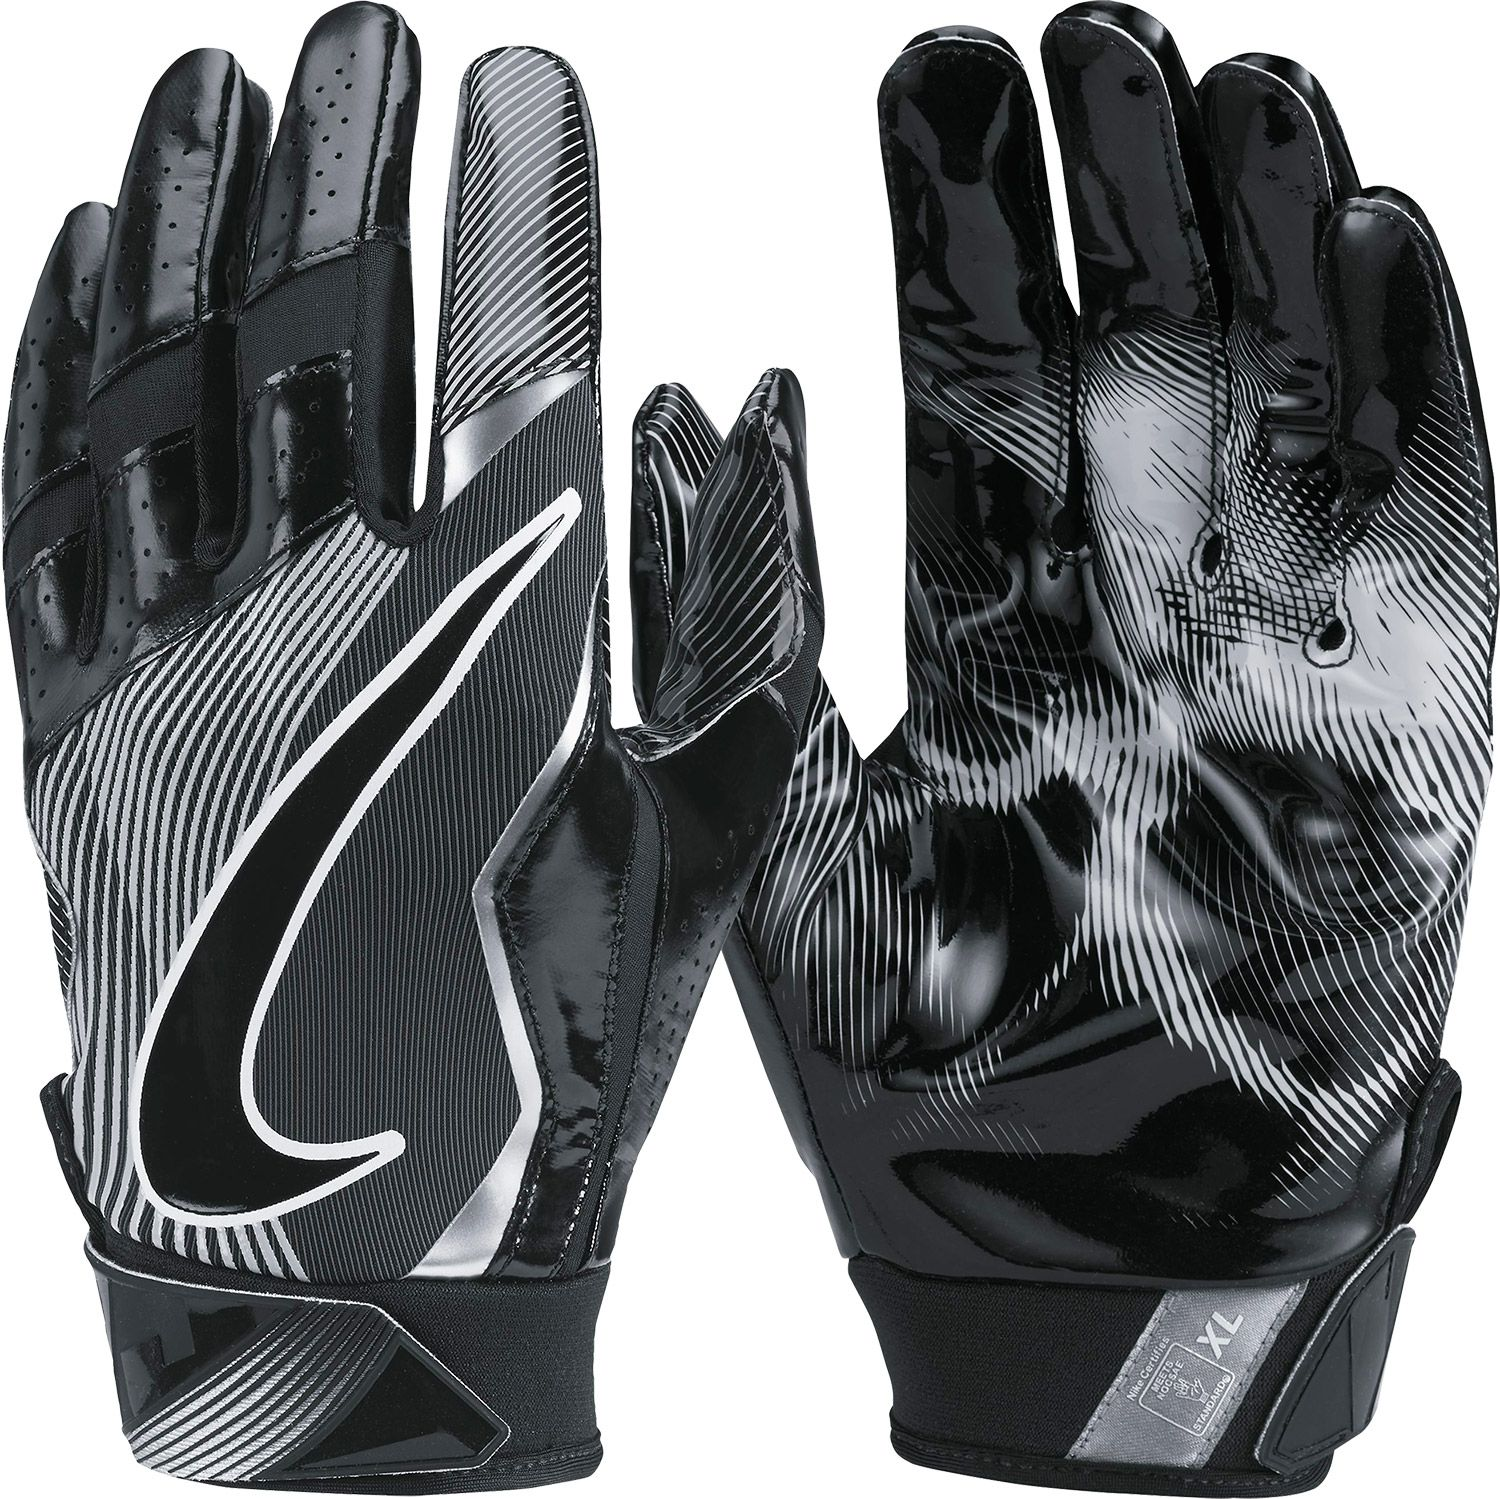 Nike Men's Vapor Jet Lightspeed Football Gloves - Available in 5 Sizes and 11 Colors